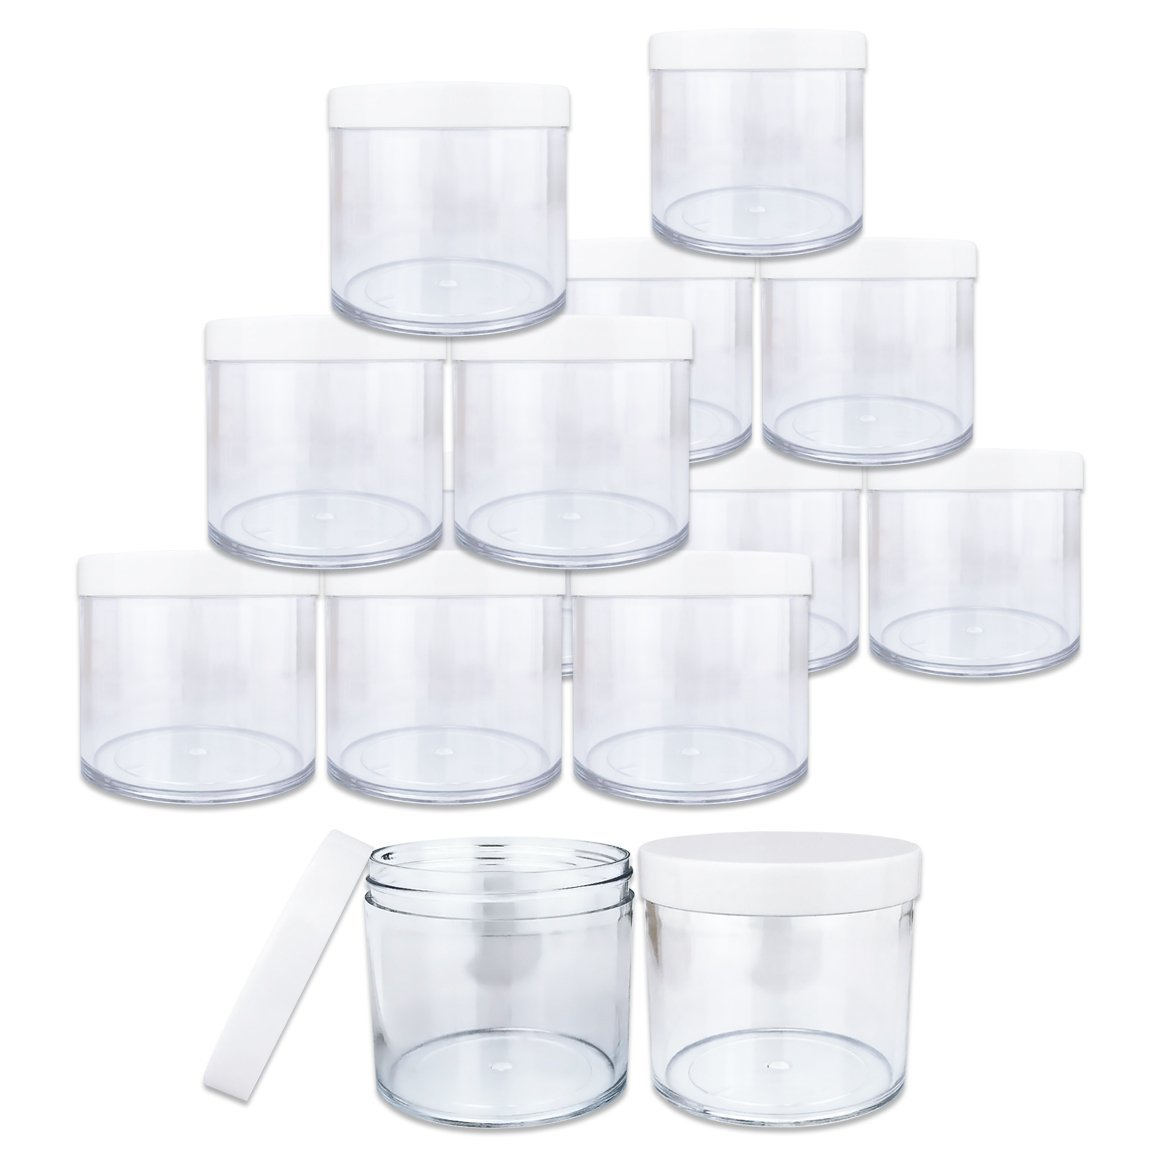 5c23a61946a0 Cheap Luxury Round Acrylic Jars, find Luxury Round Acrylic Jars ...